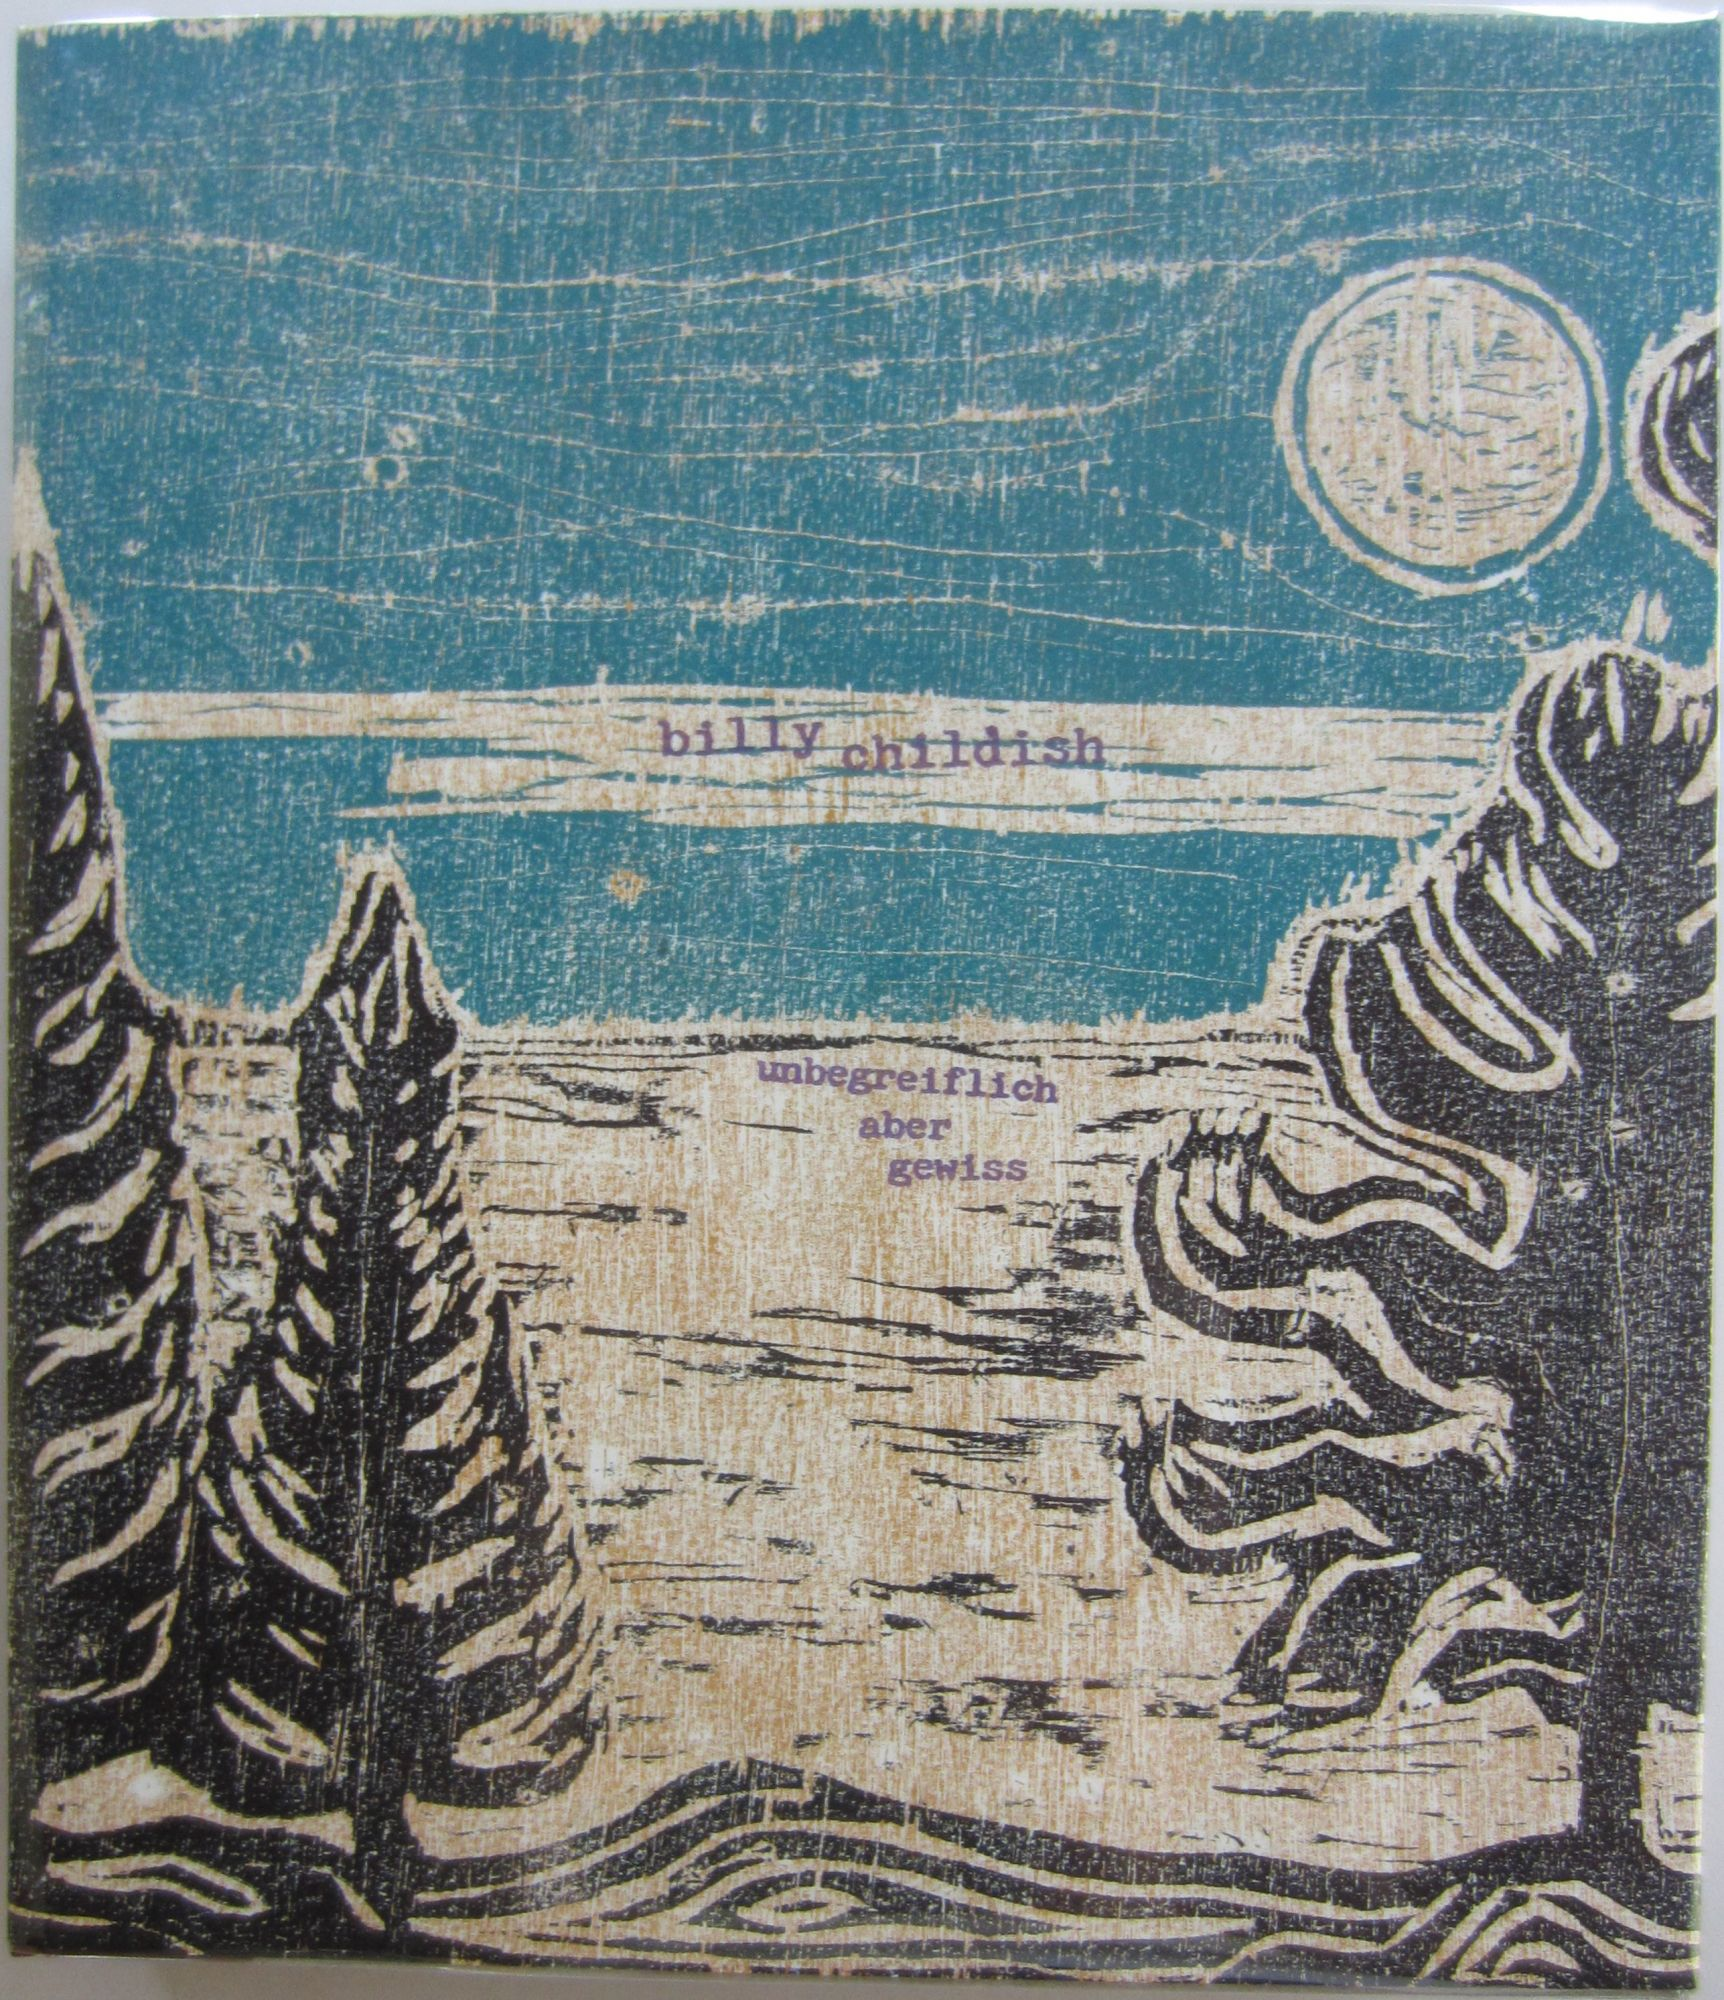 unbegreiflich aber gewiss unknowable but certain a catalogue of paintings august 2014 january 2017 woodcut edition by billy childish on skyline